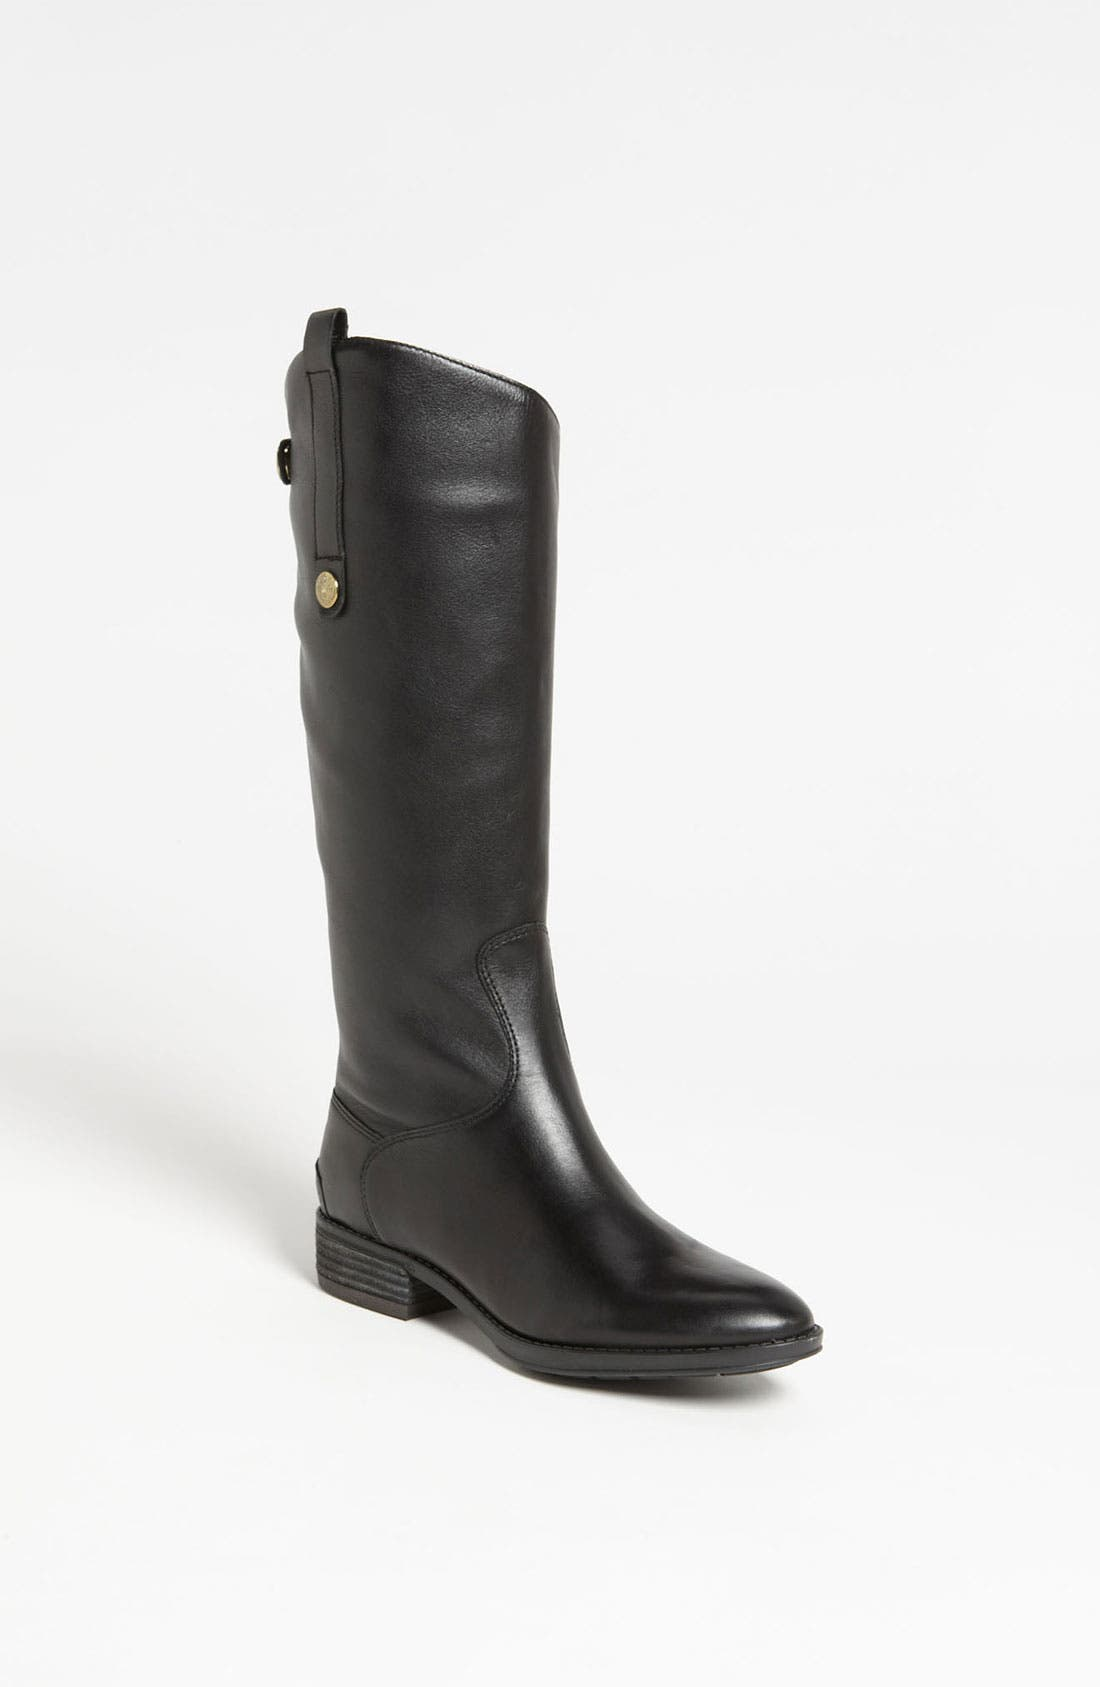 Womens Wide Classic Riding Boots - 5.5 - BROWN Lands End Sneakernews Cheap Price L0cOvSg